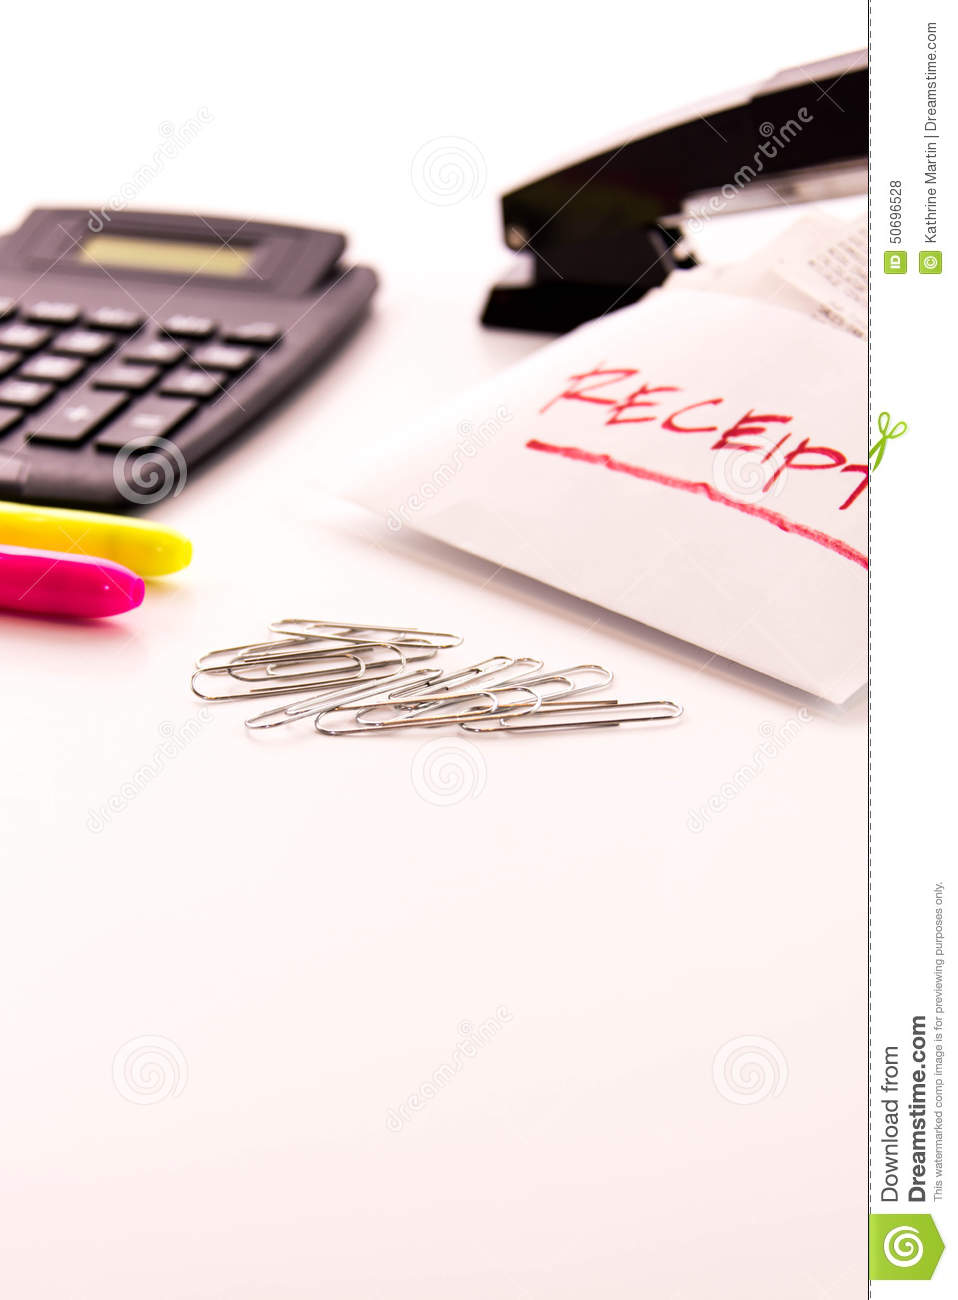 Tax preparation supplies and receipts